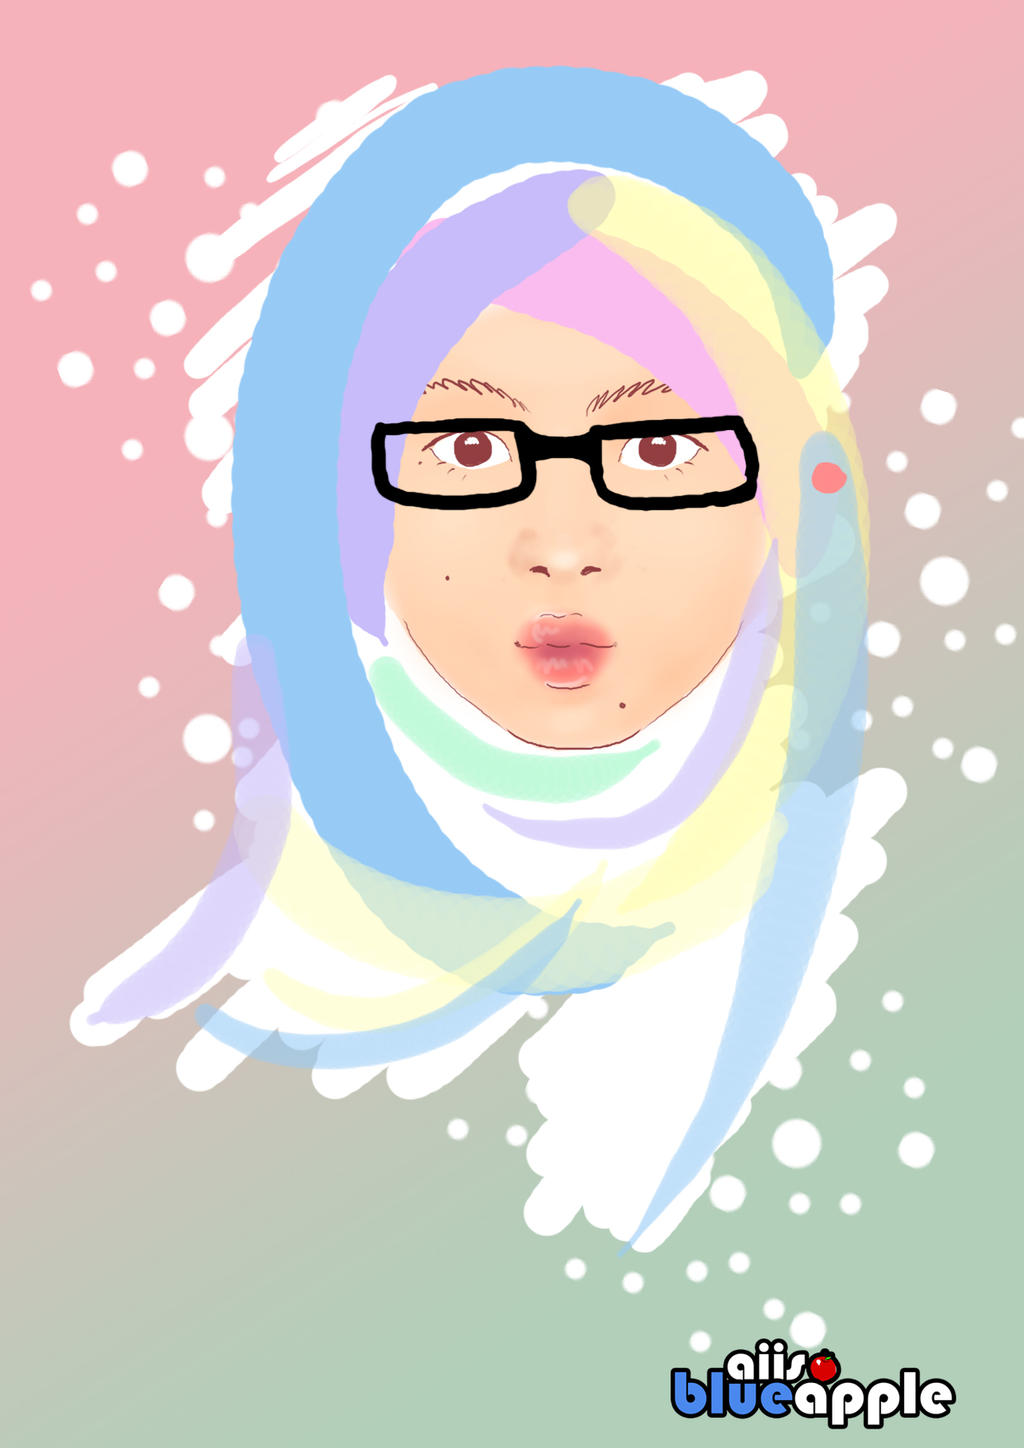 aiisblueapple's Profile Picture